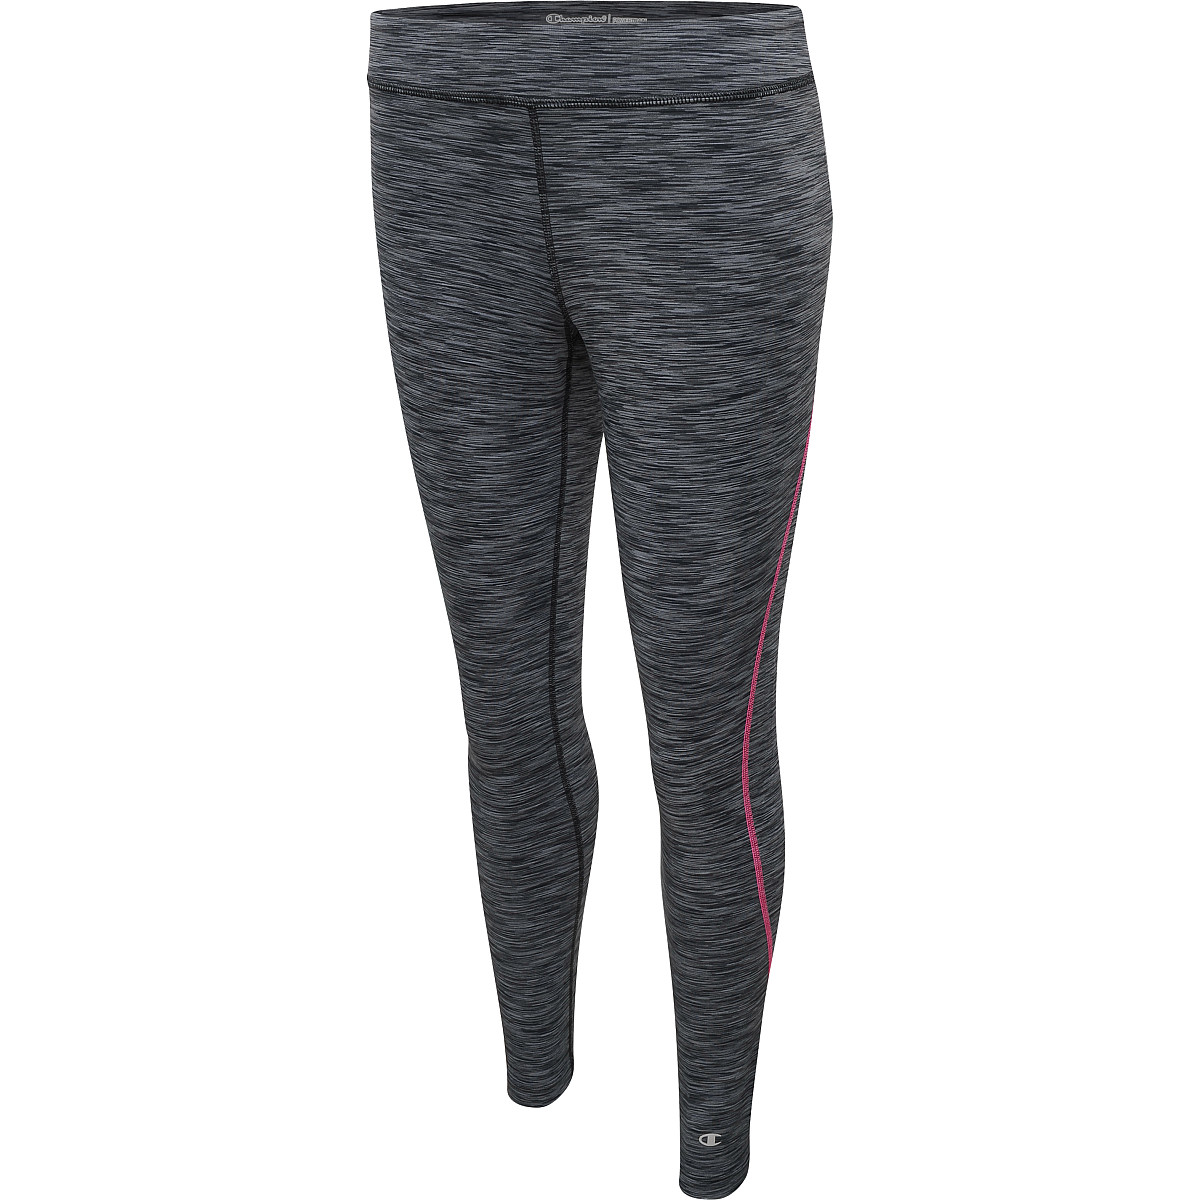 CHAMPION Women's PowerTrain Absolute Workout Space-Dyed Fitted Tights - SportsAuthority.com